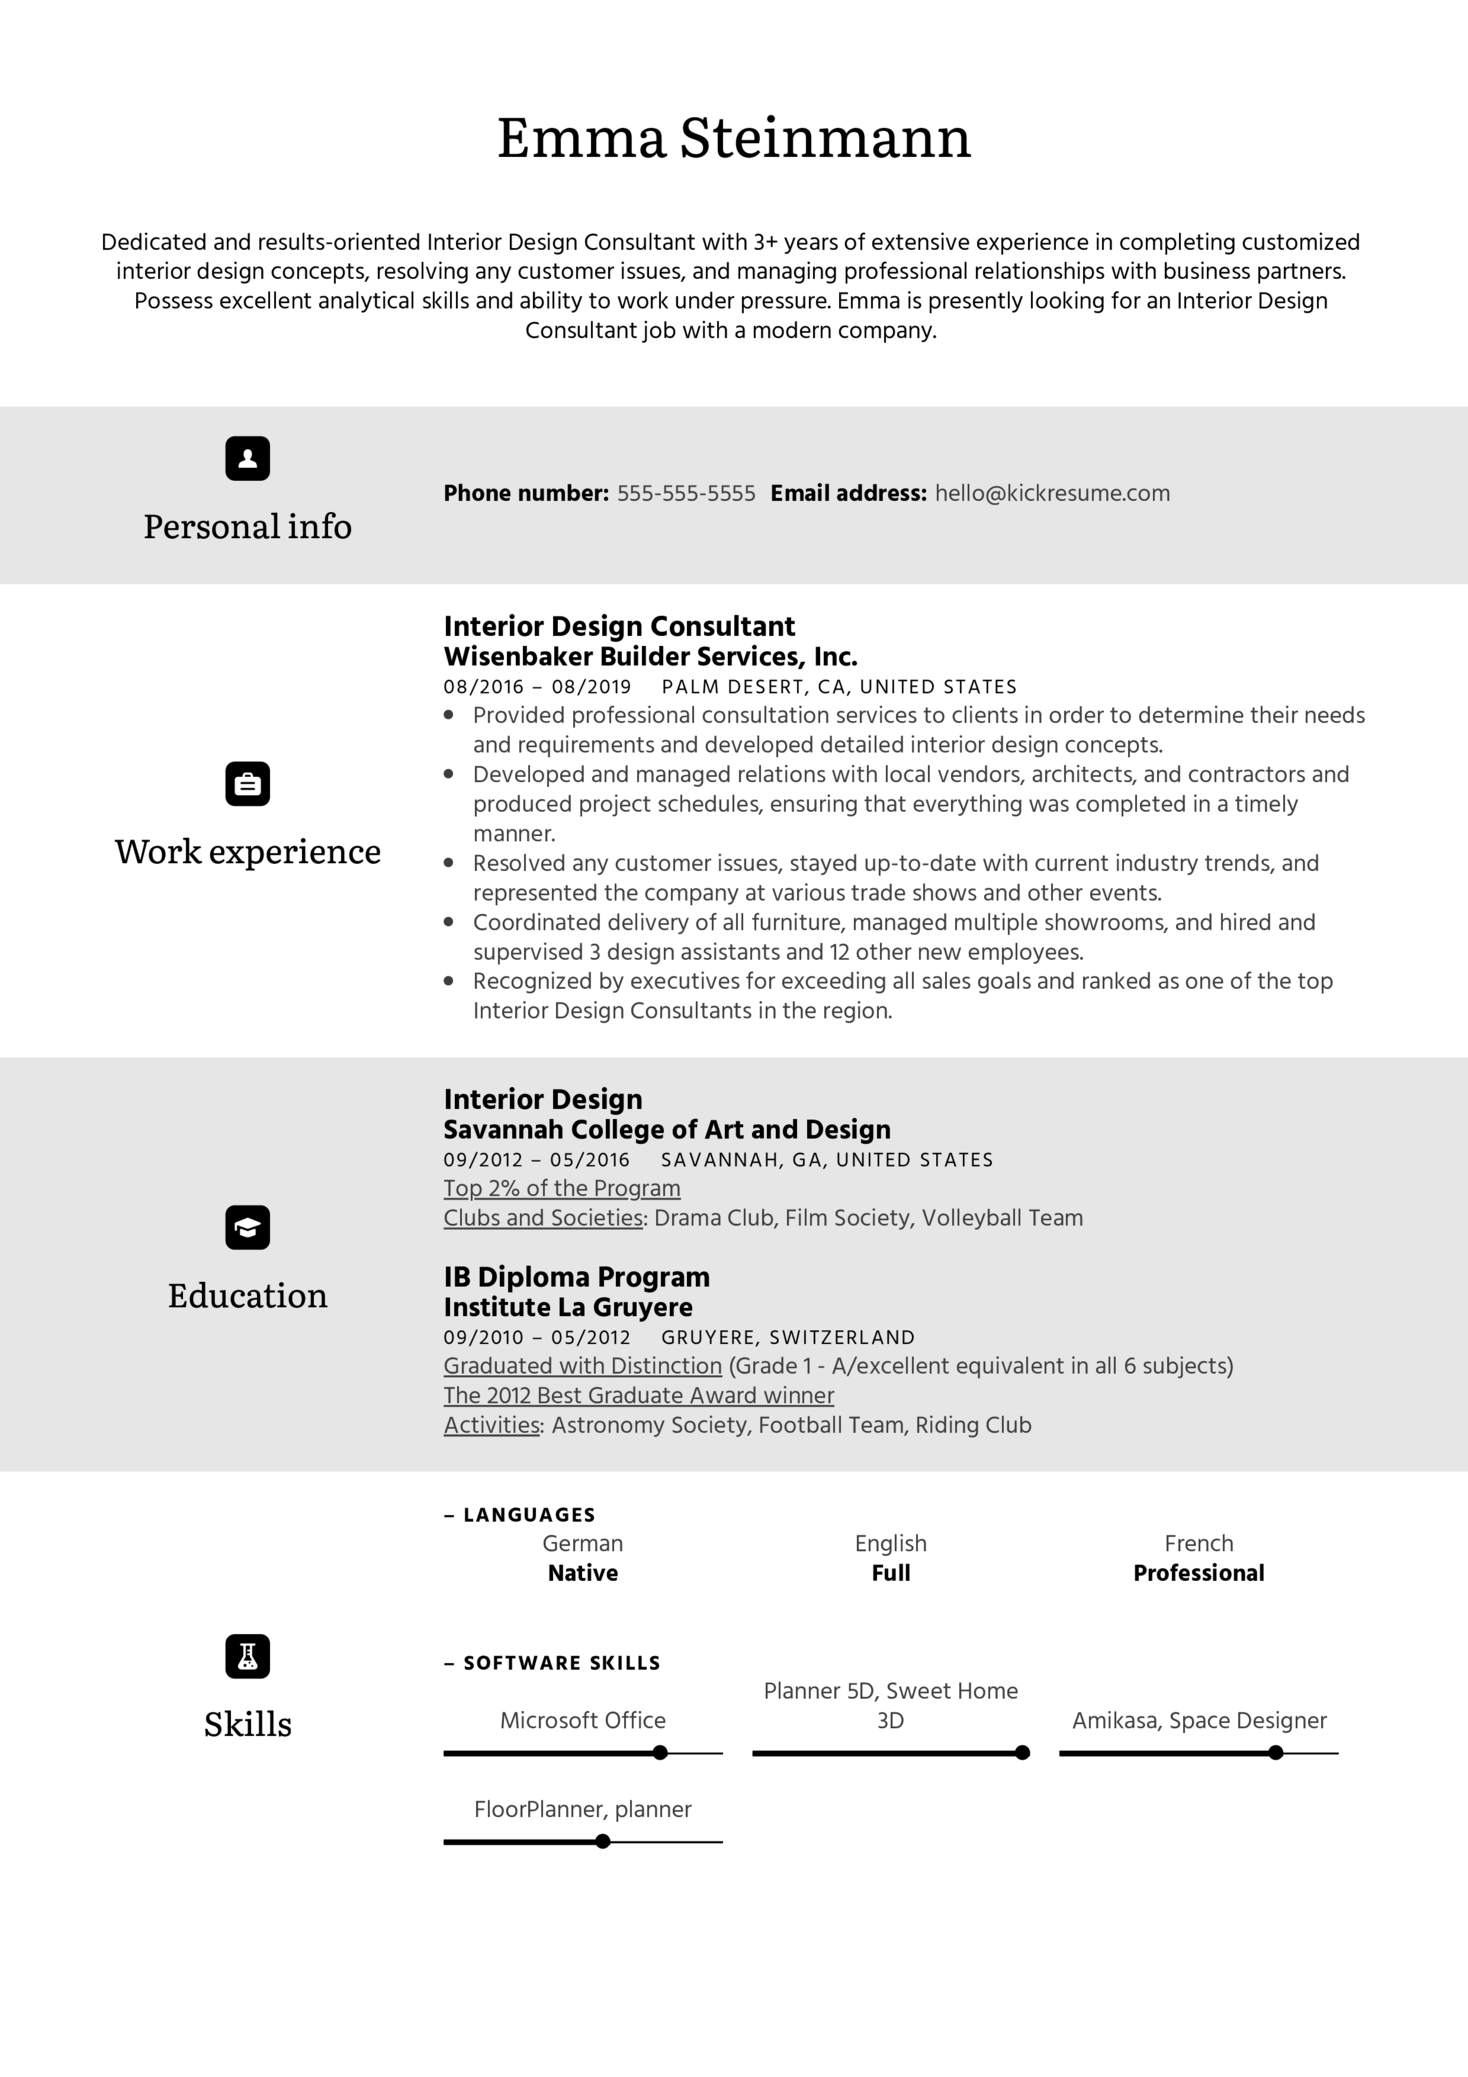 Interior Design Consultant Resume Sample